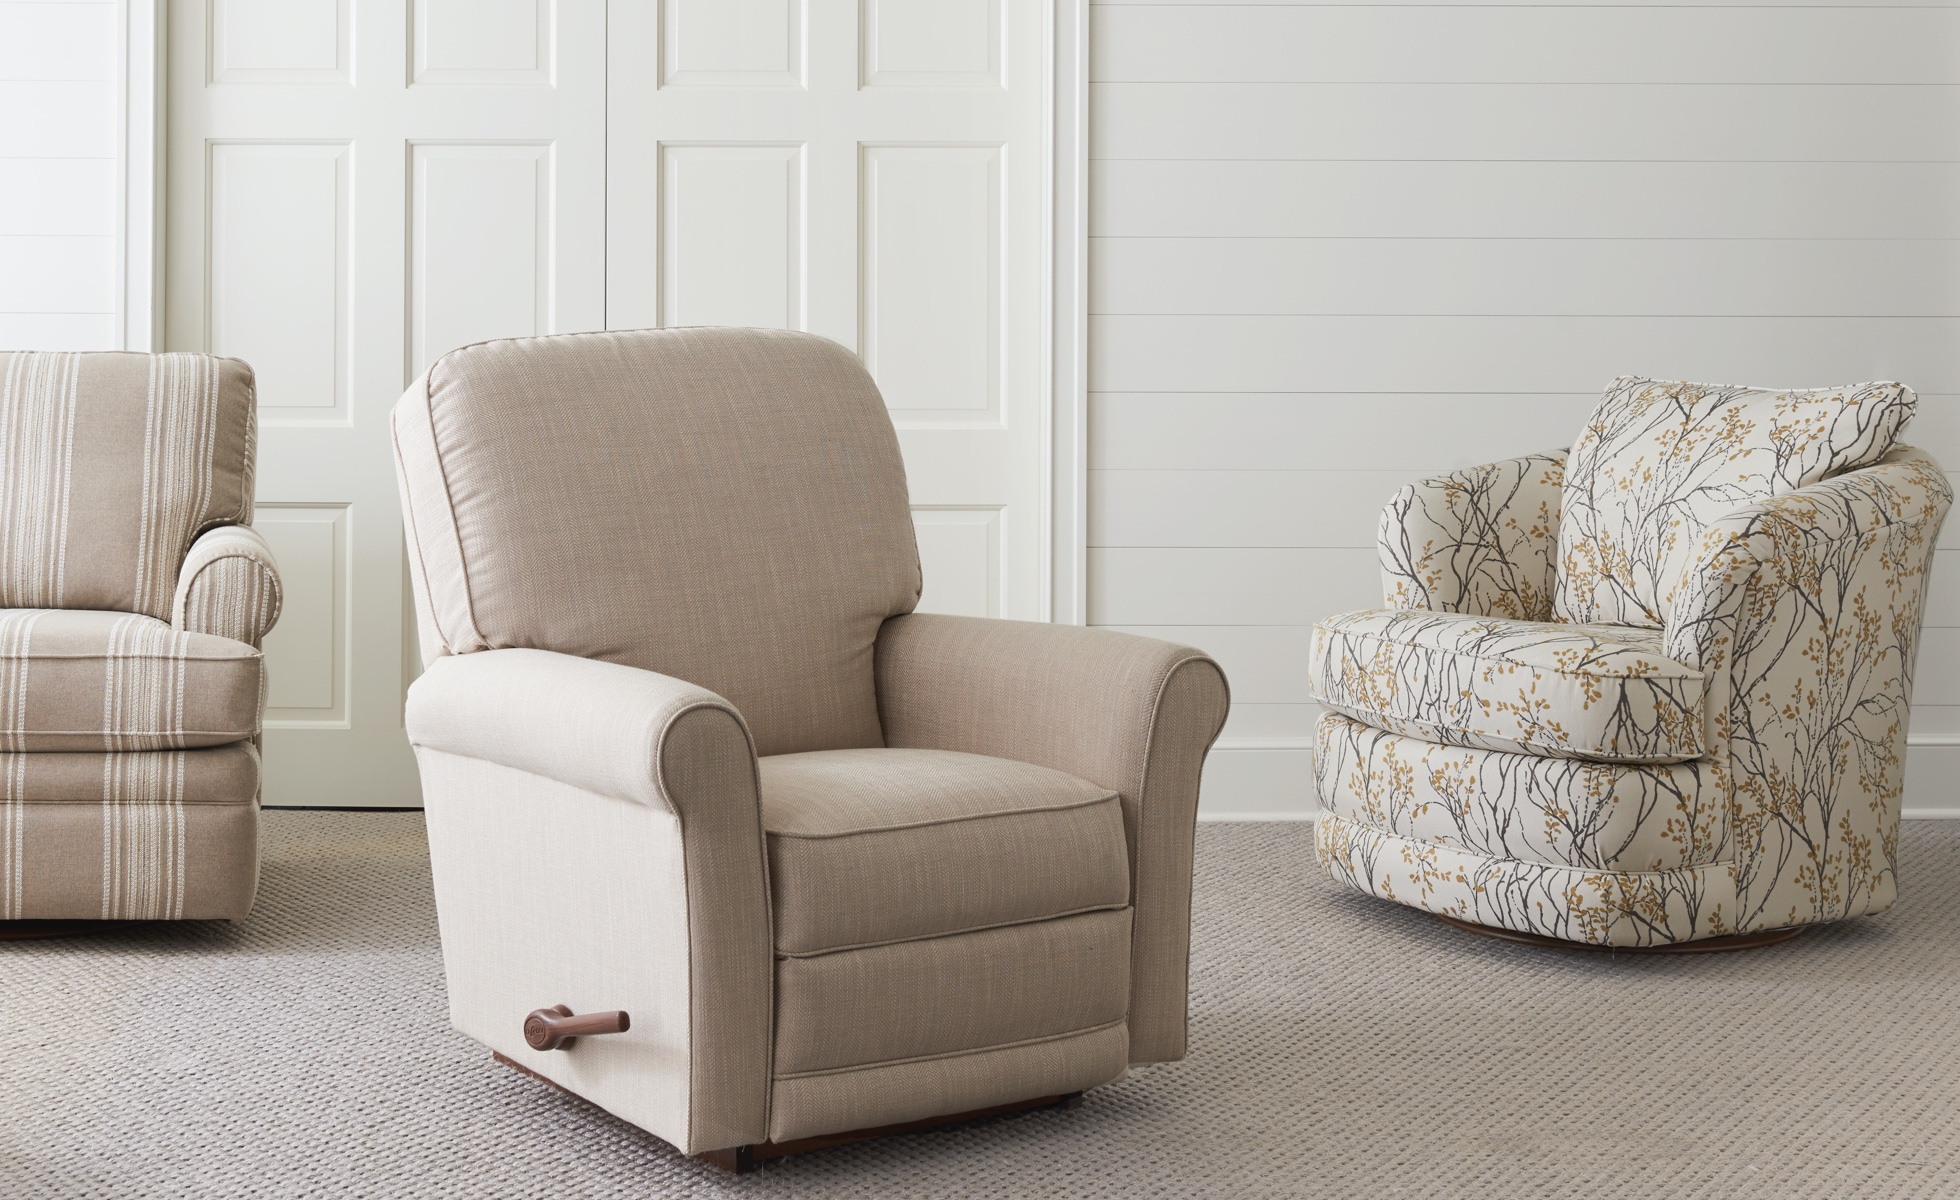 Nursery Furniture | La Z Boy With Regard To Rocking Chairs Arm Chairs For Living And Nursery Room (View 15 of 20)